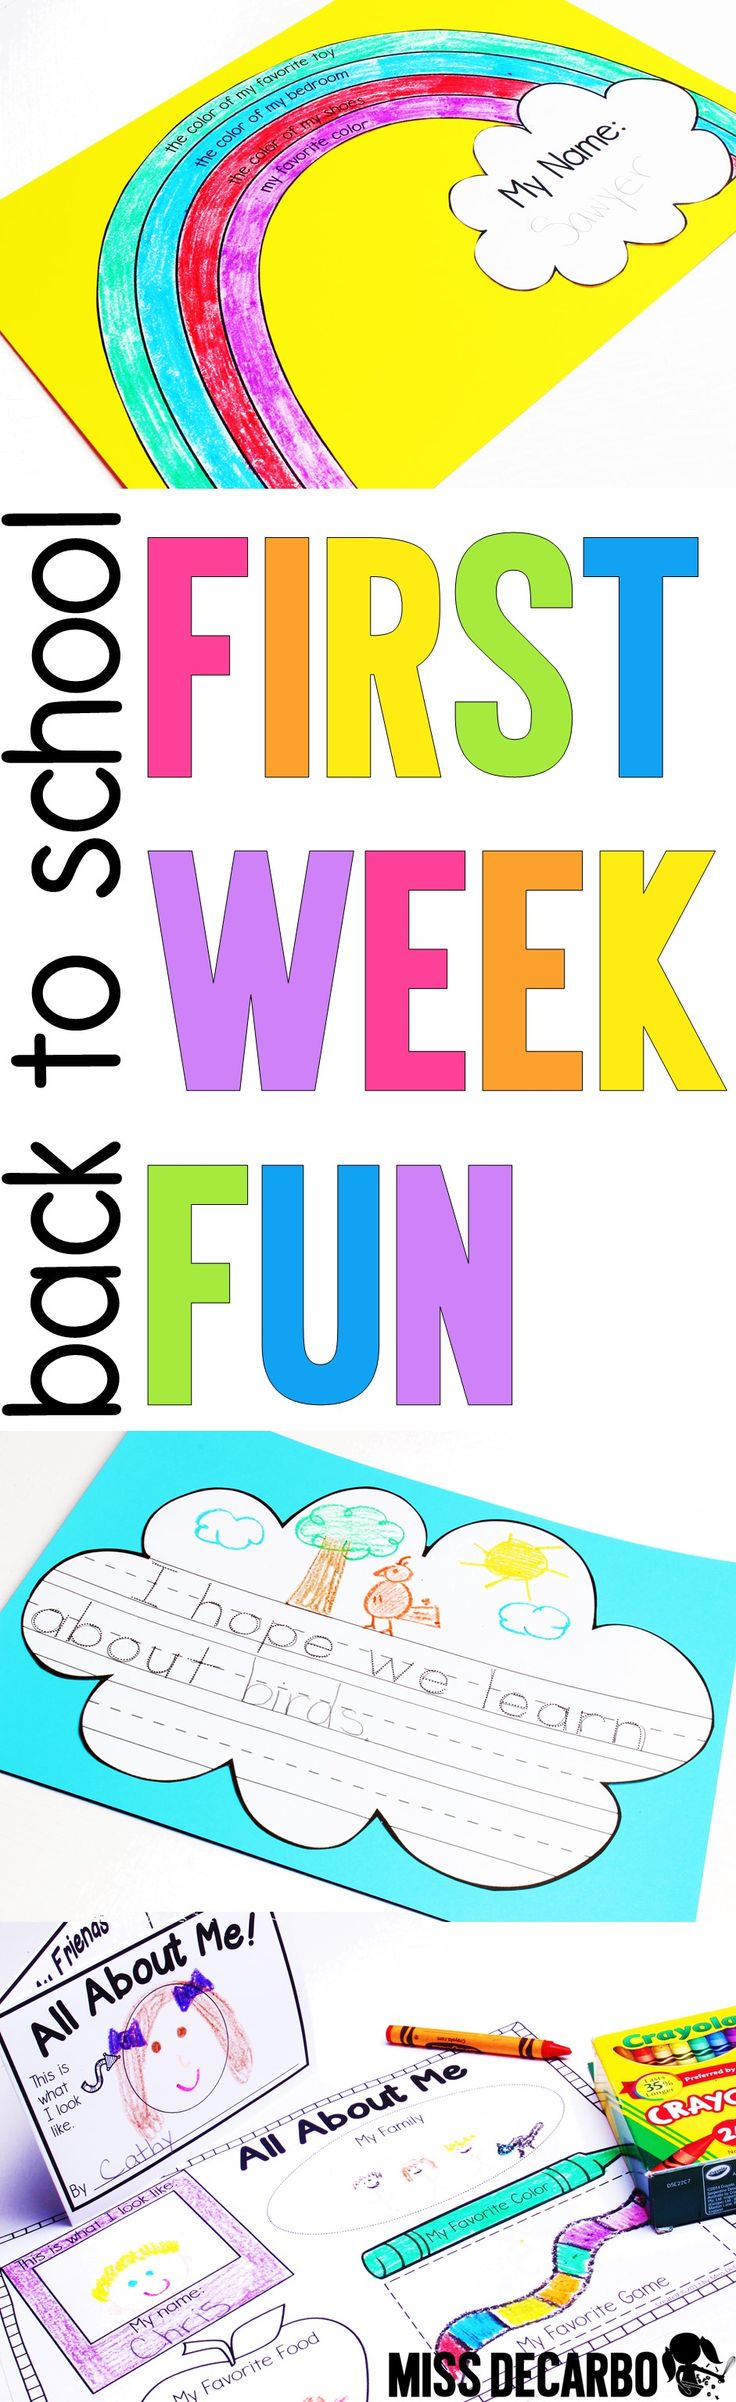 Poster design ideas for school - Back To School First Week Fun Pack